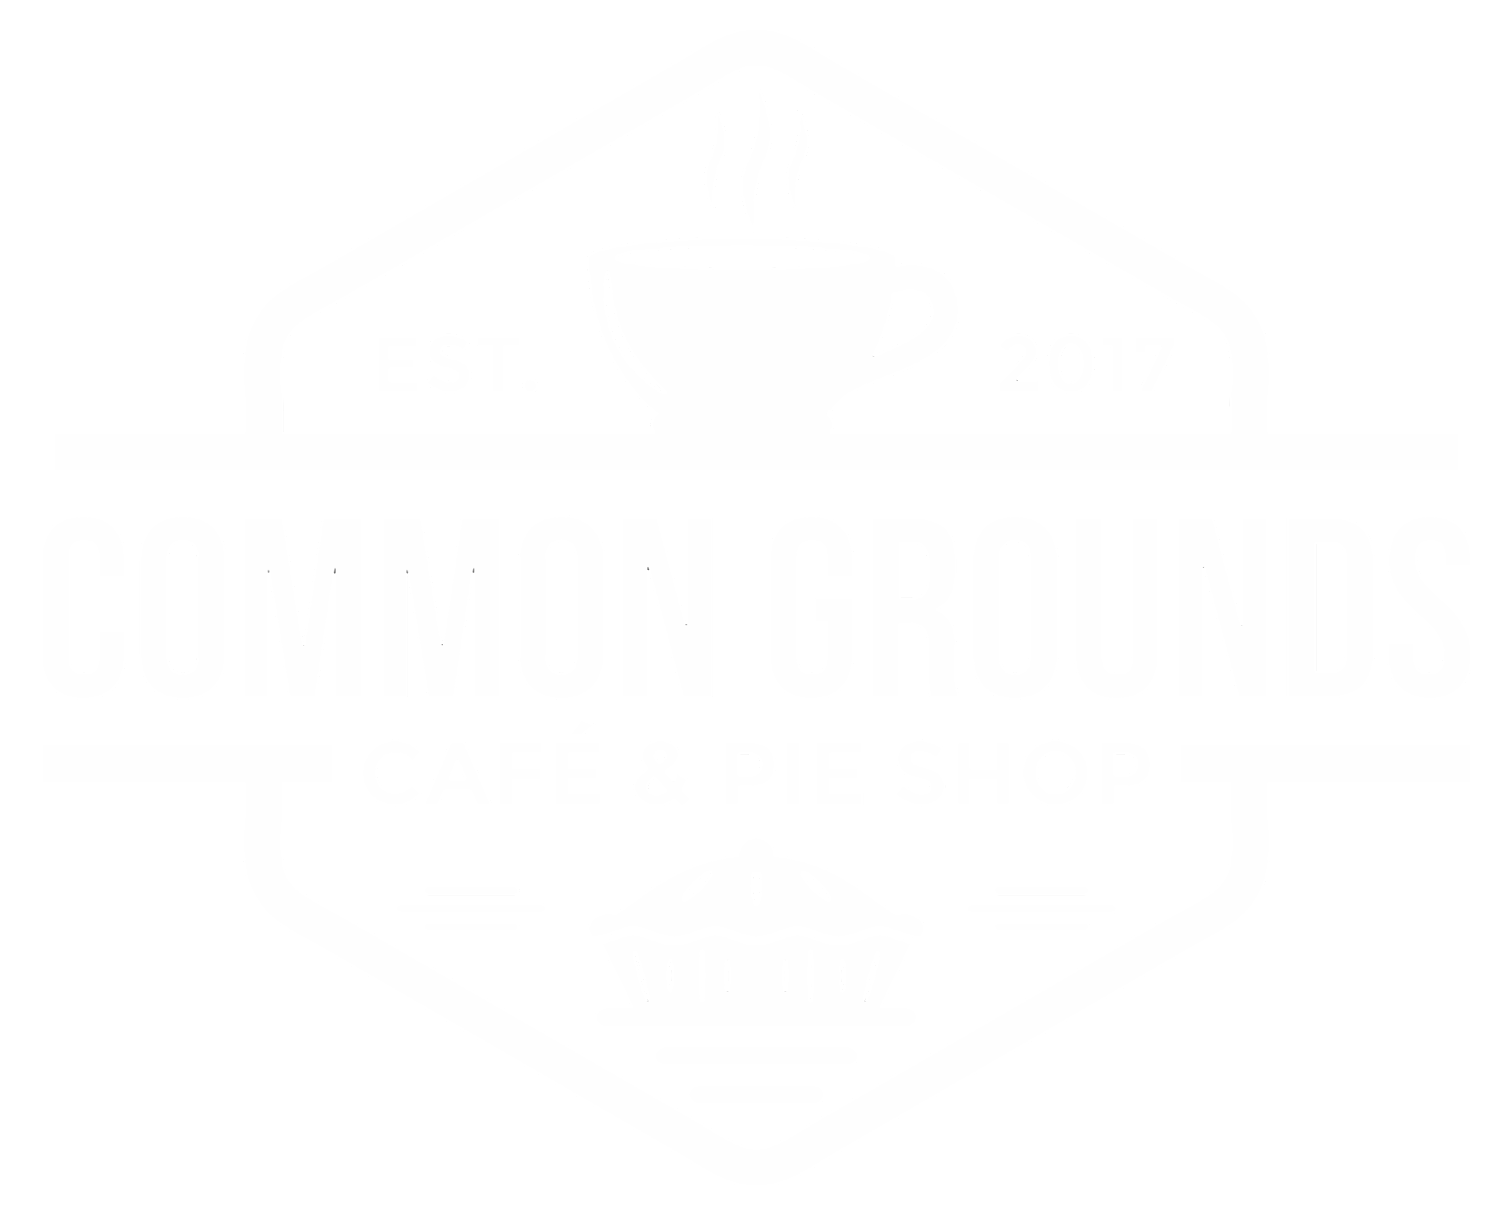 Common Grounds Cafe & Pie Shop